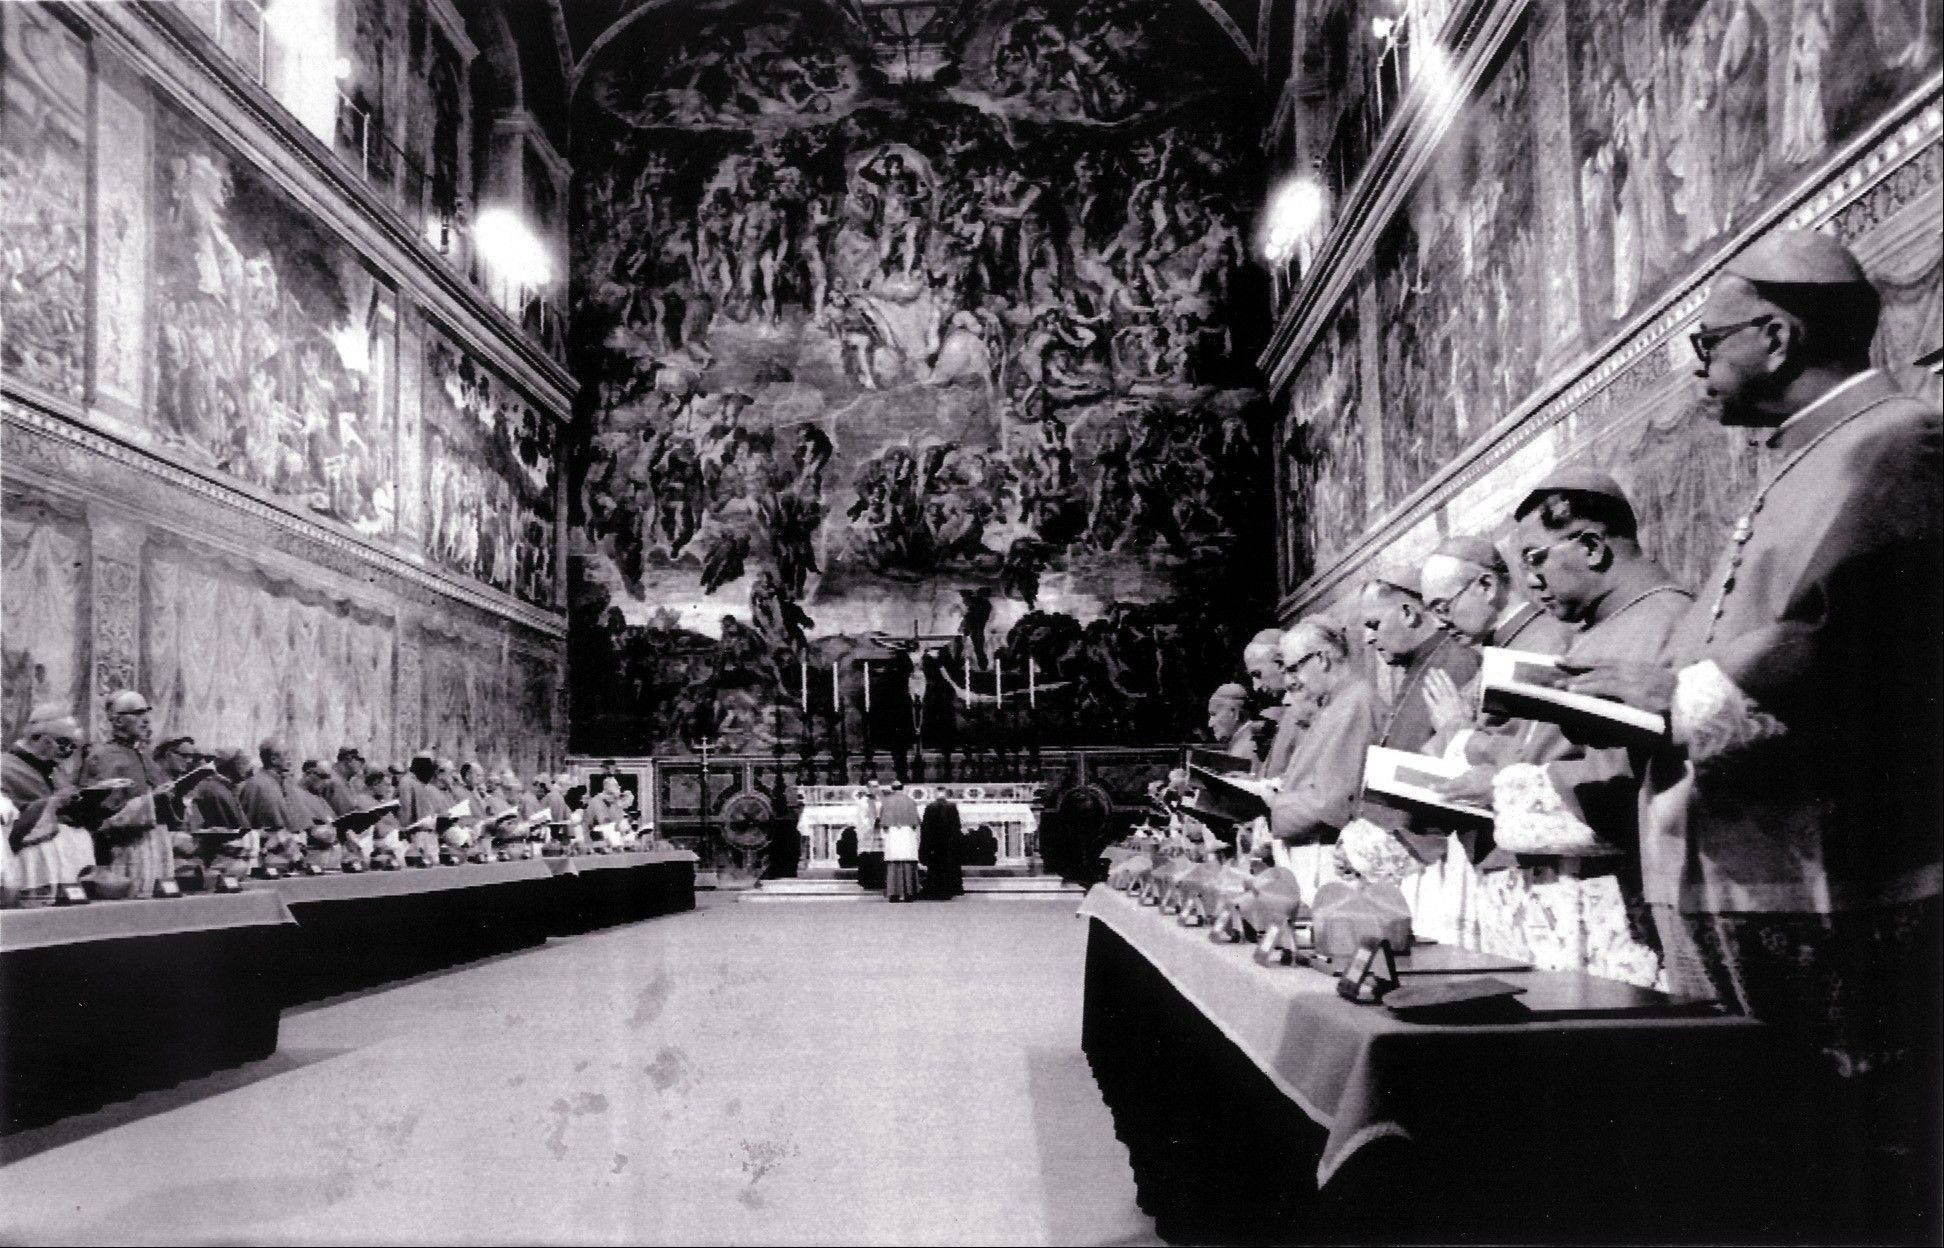 In this Oct. 14, 1978 file photo, cardinals stand in prayer inside the Sistine Chapel after they entered the conclave area for electing the successor of late John Paul I. The papal conclave is steeped in mystery � and the church likes it that way.